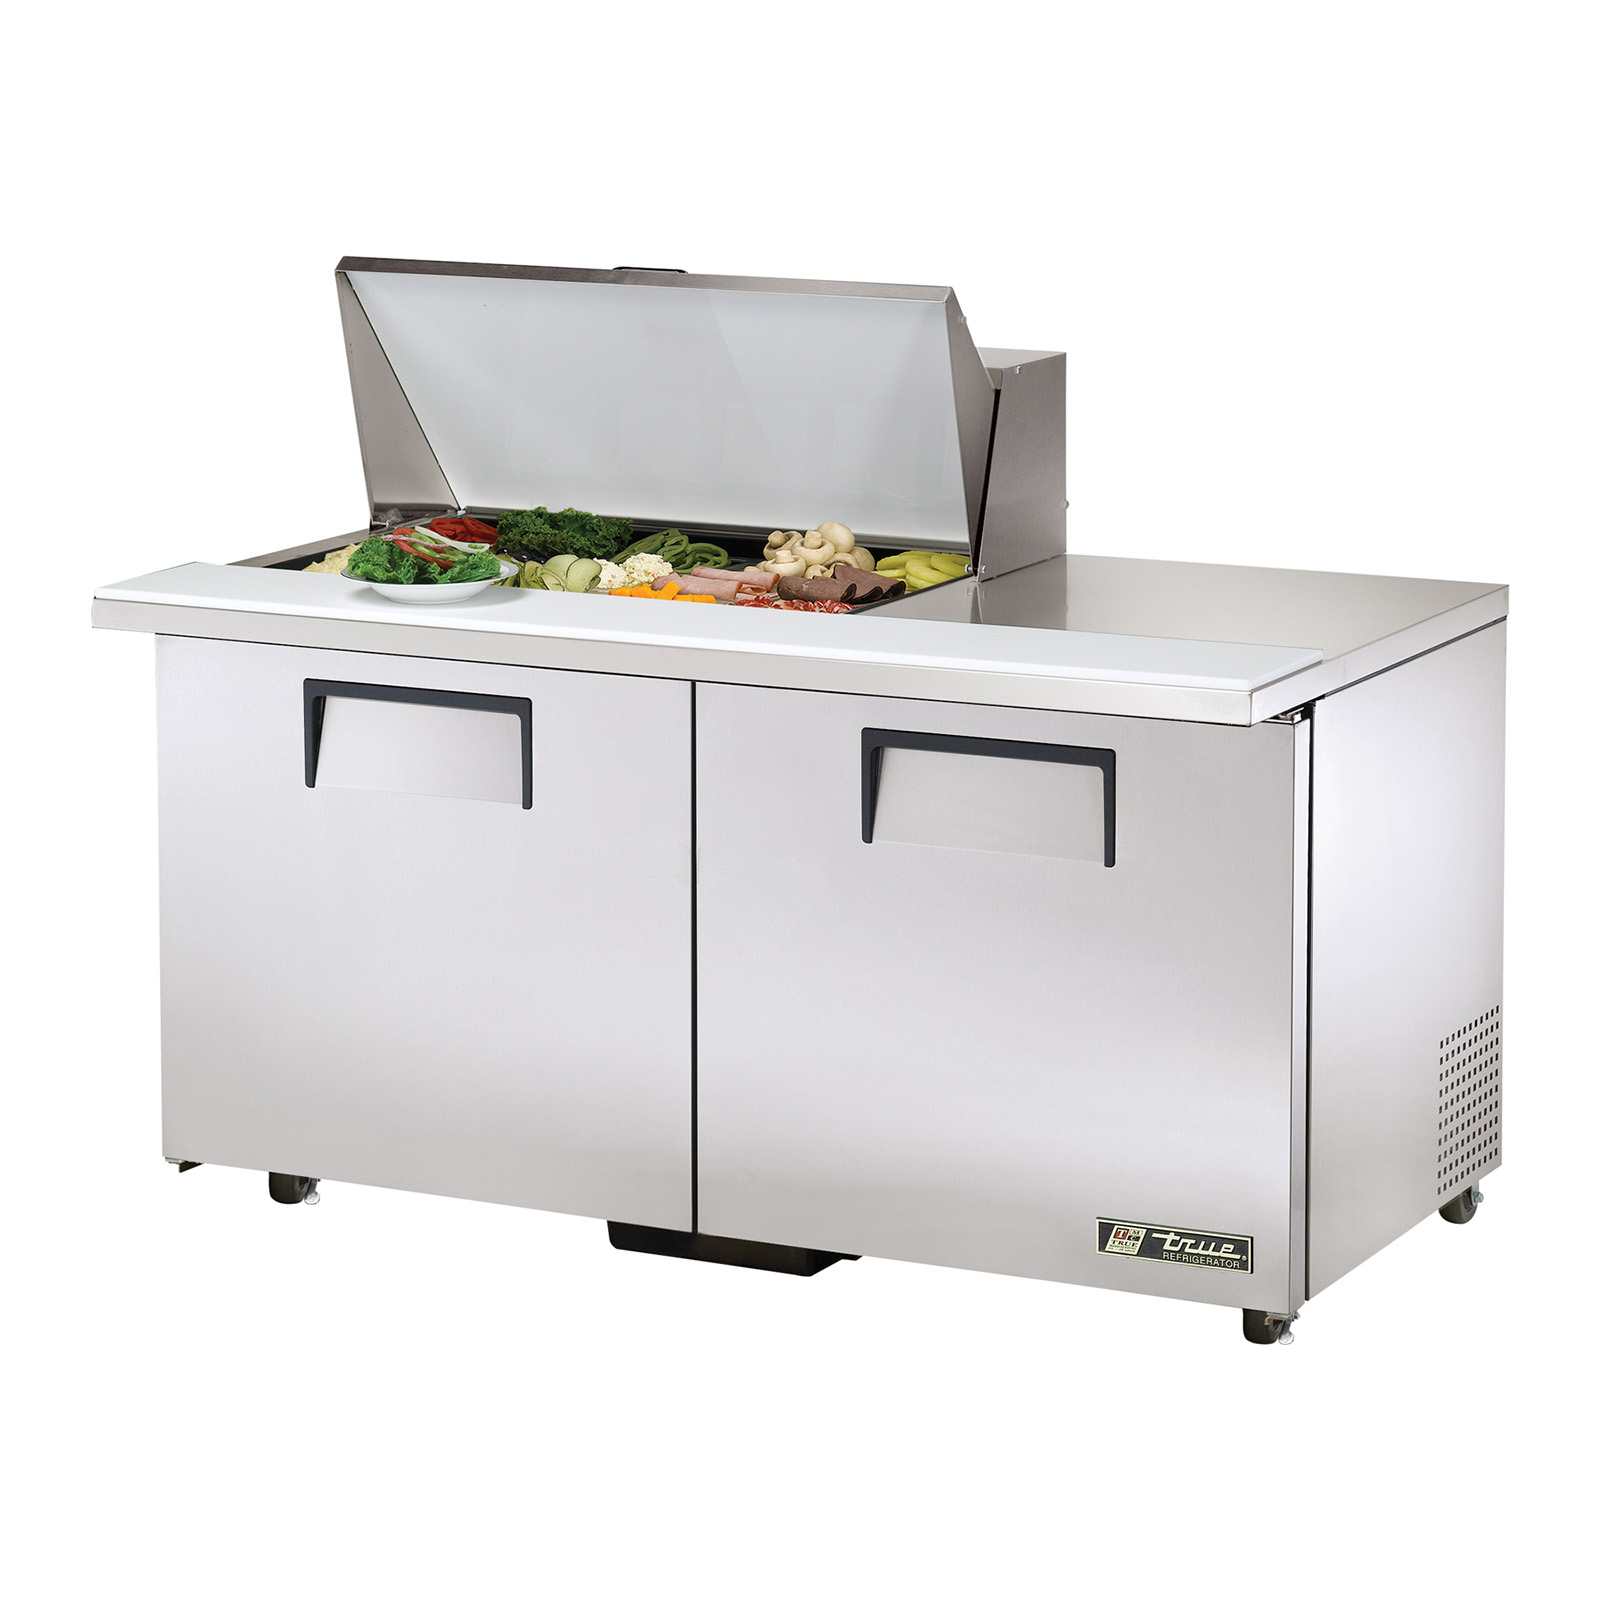 TSSU-60-15M-B-ADA True - ADA Compliant Mega Top Sandwich/Salad Unit (15) 1/6 size (4